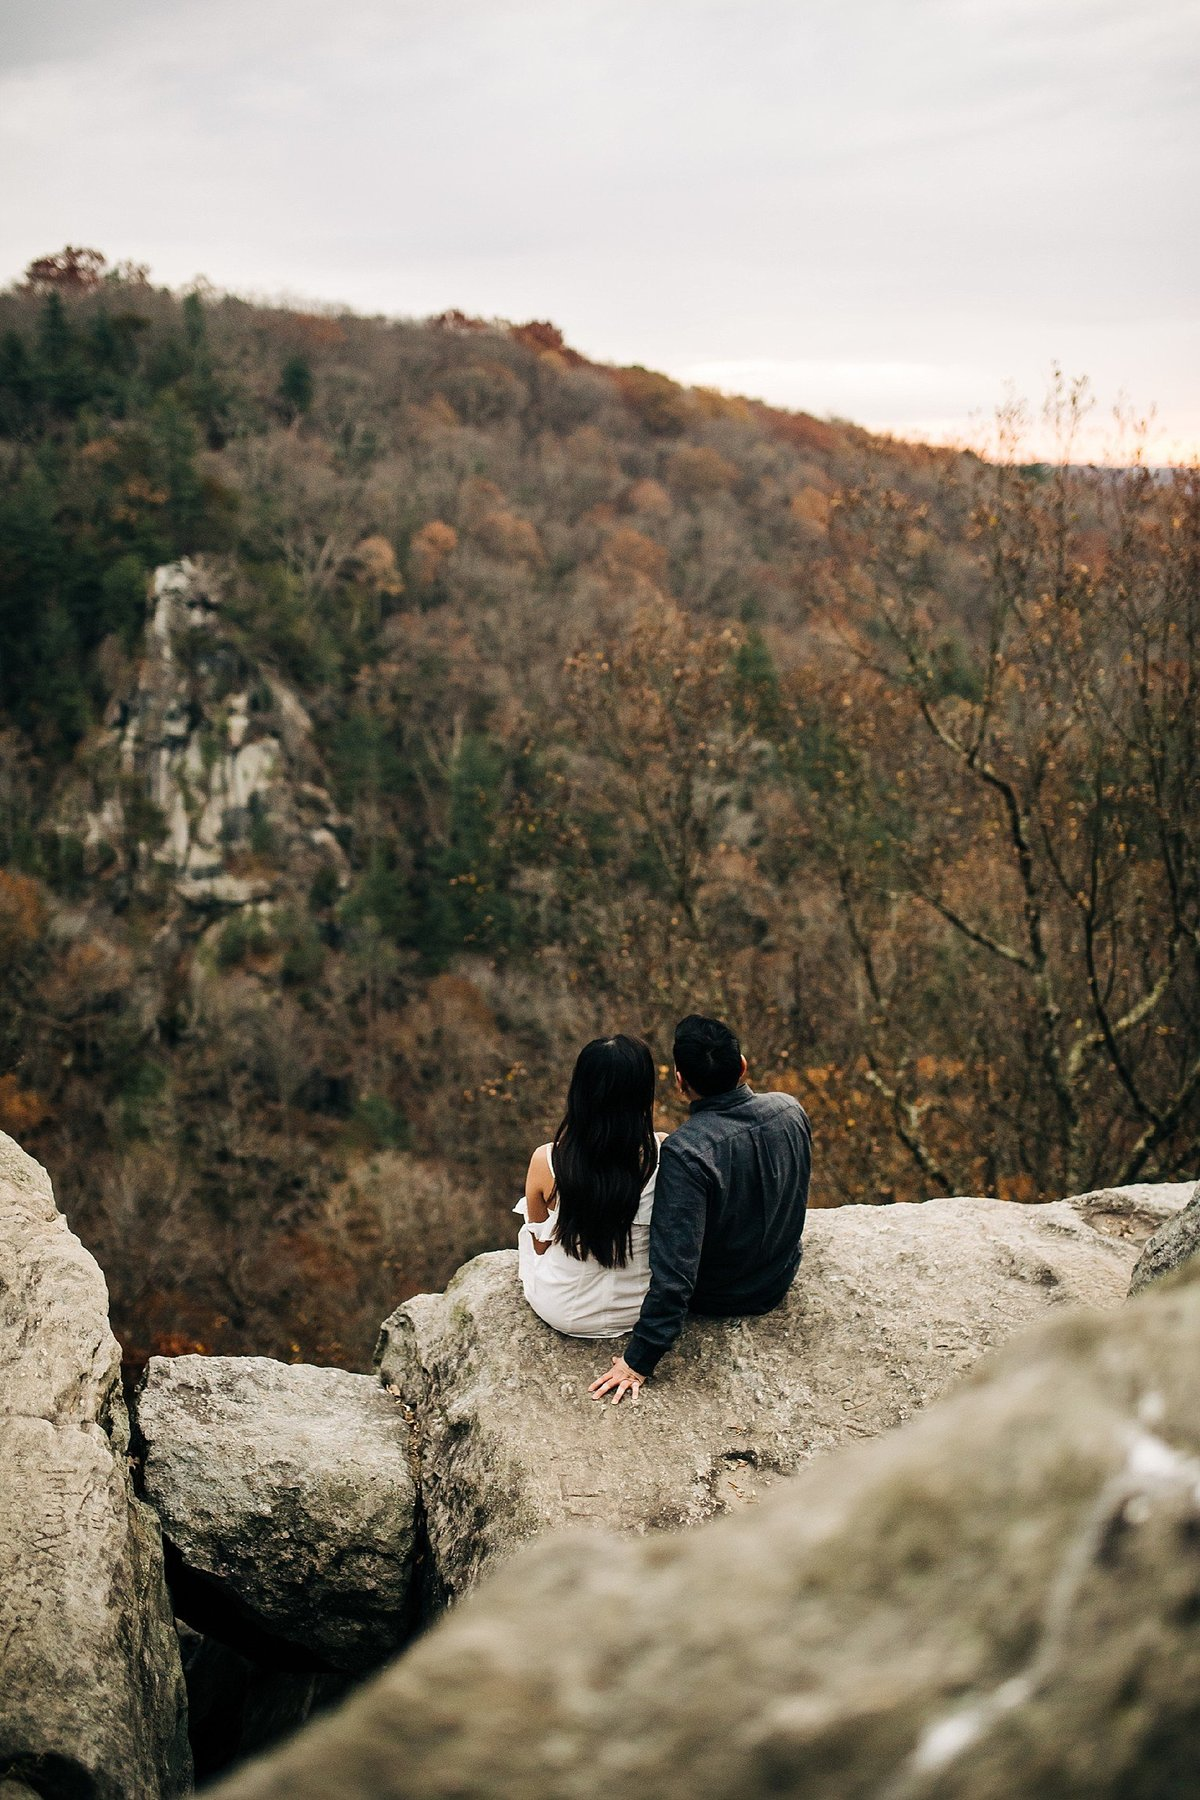 rocks-state-park-maryland-sunrise-engagement-session-rebecca-renner-photography_0003